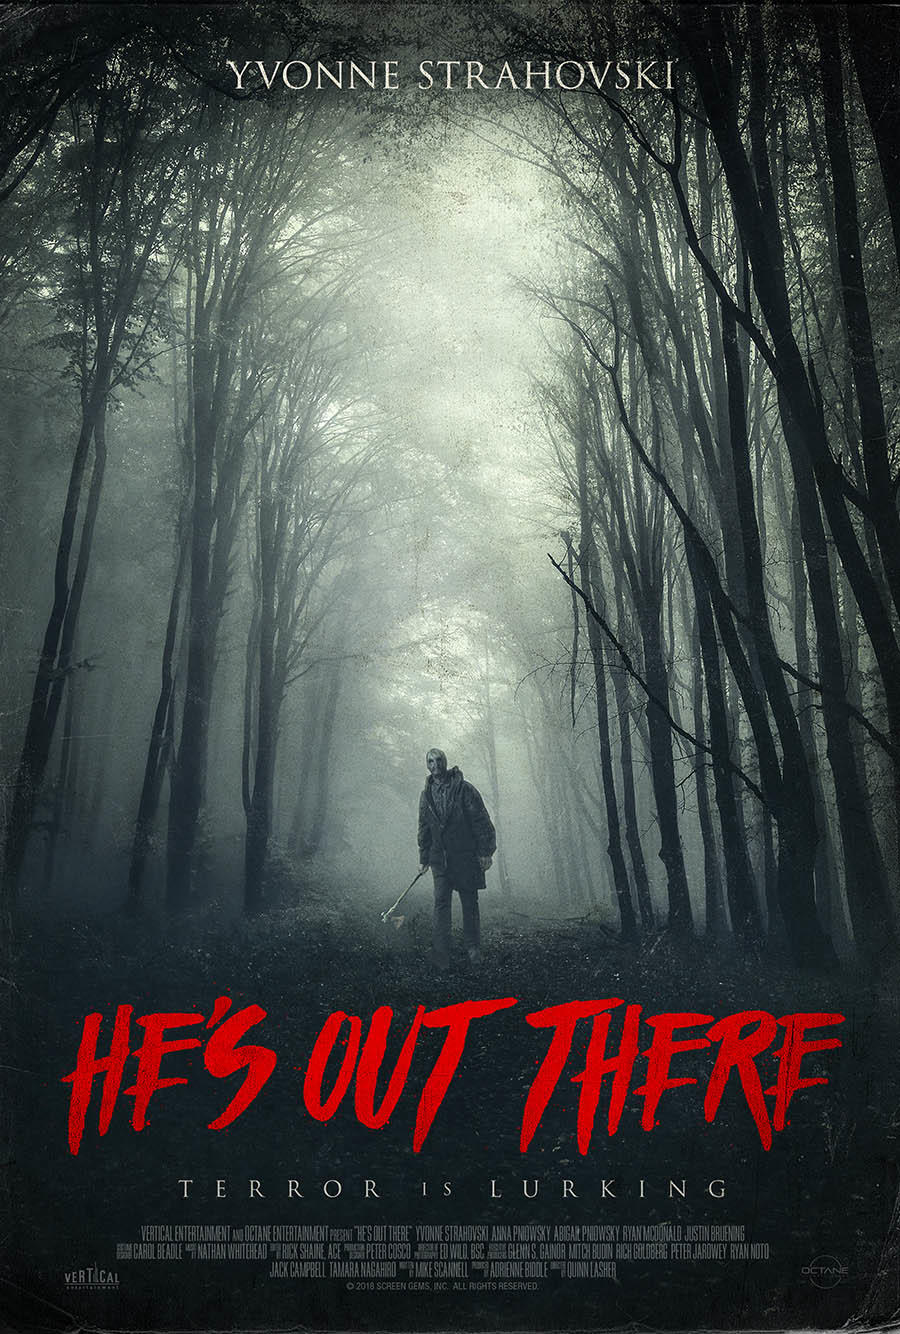 He's Out There poster art